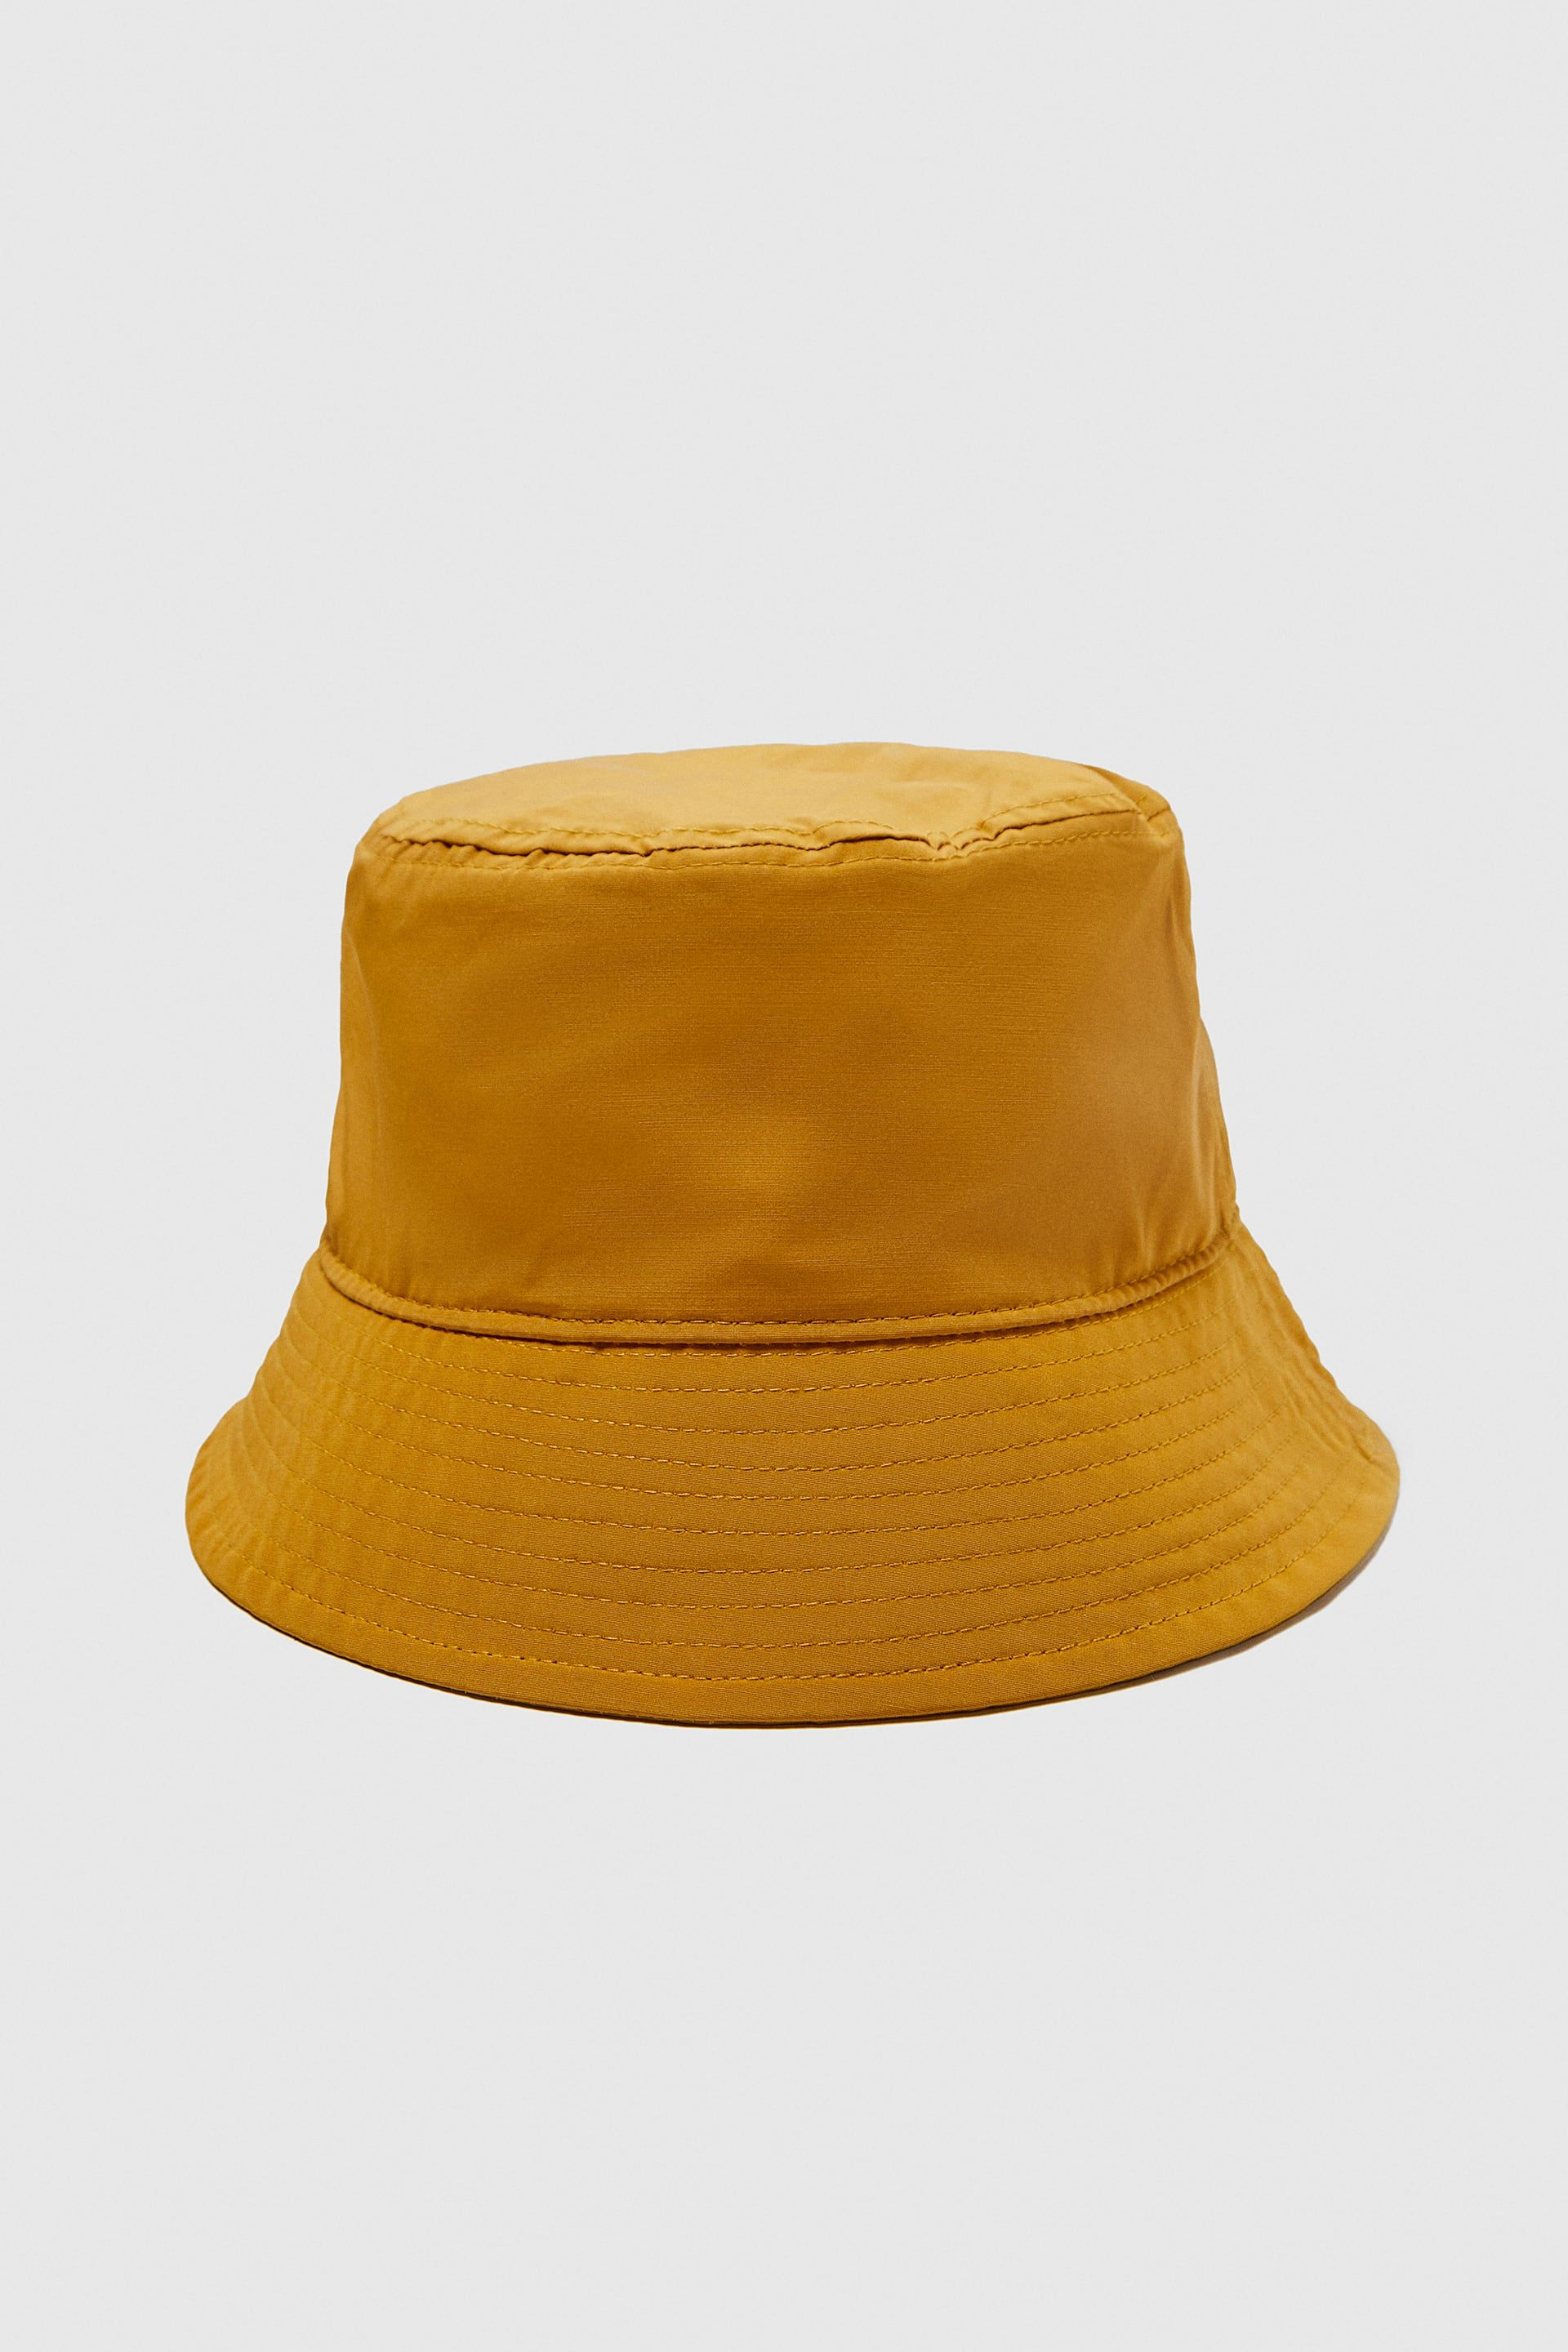 9065307305 1 1 1 Cool Bucket Hats e91bd83300